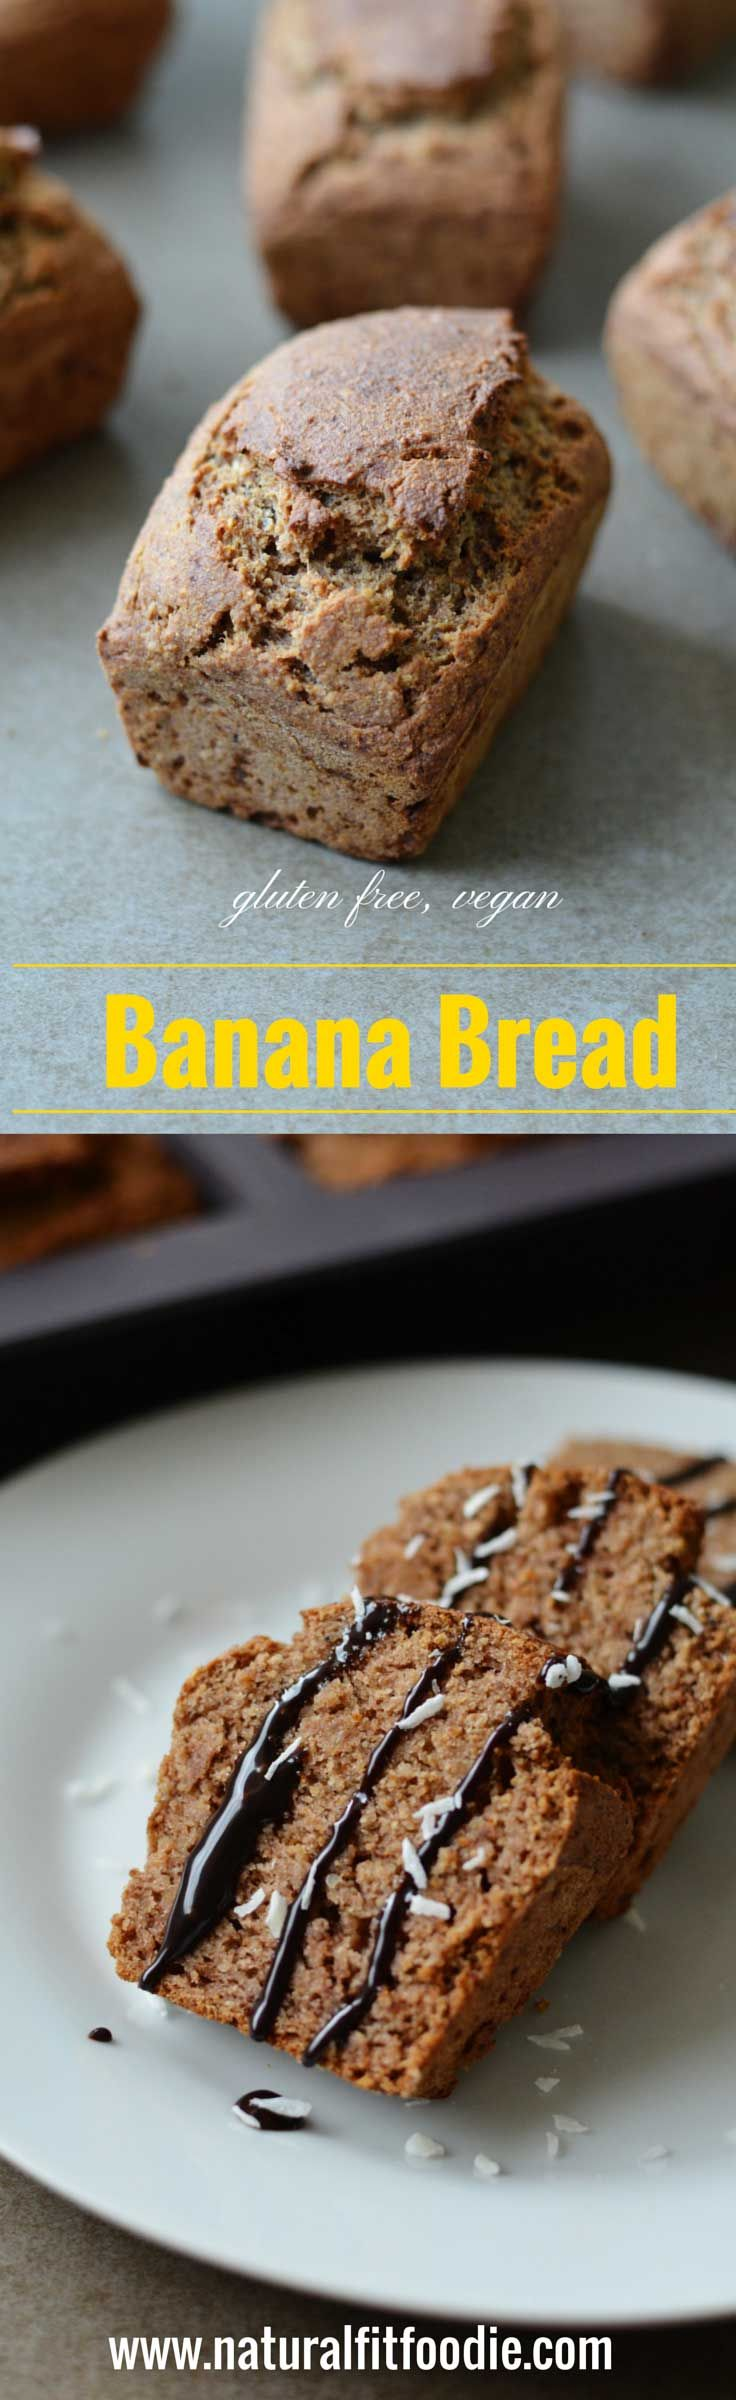 Gluten free banana bread - Natural Fit Foodie - A lightly sweetened gluten free banana bread that's delicious and completely guilt free! Bonus, it's vegan too!